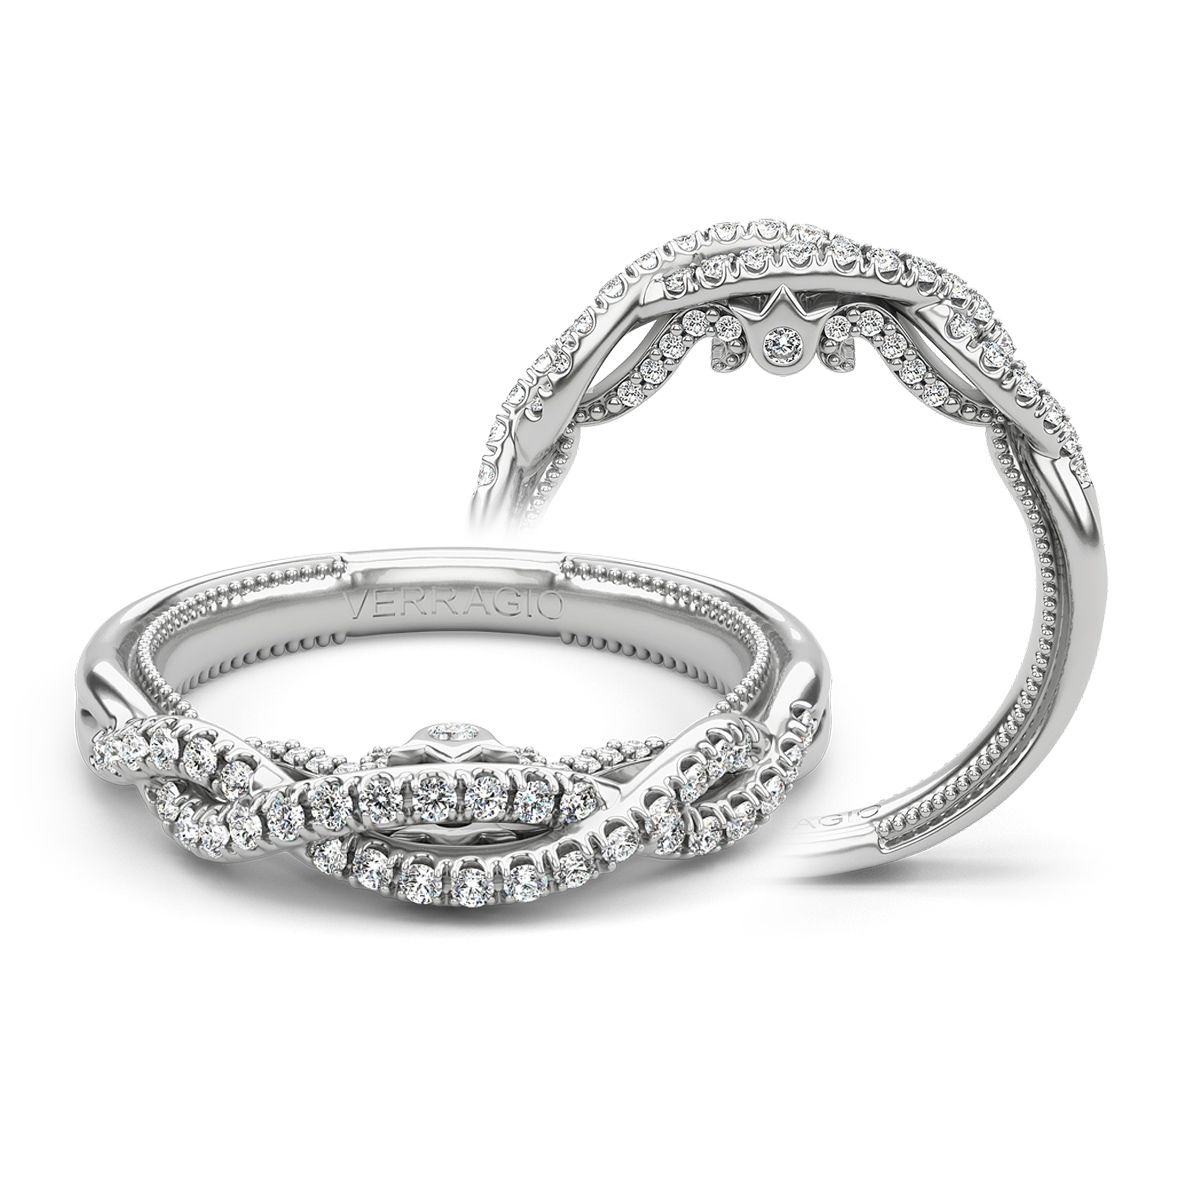 Verragio Insignia-7099W 14 Karat Wedding Ring / Band